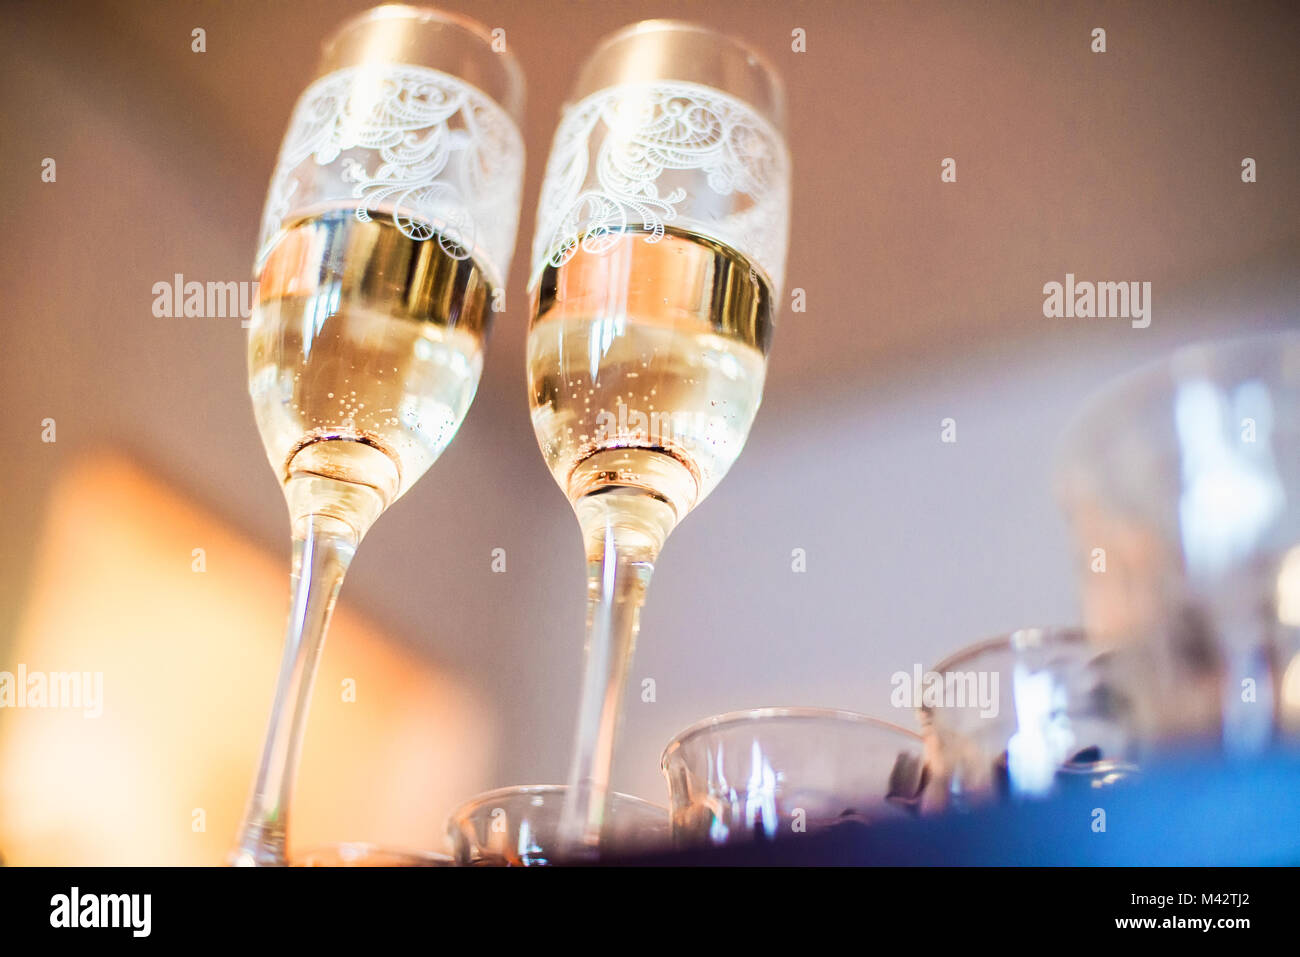 two glasses with champagne with wedding rings on the bottom photographed from the lower angle for a shallow depth - Stock Image